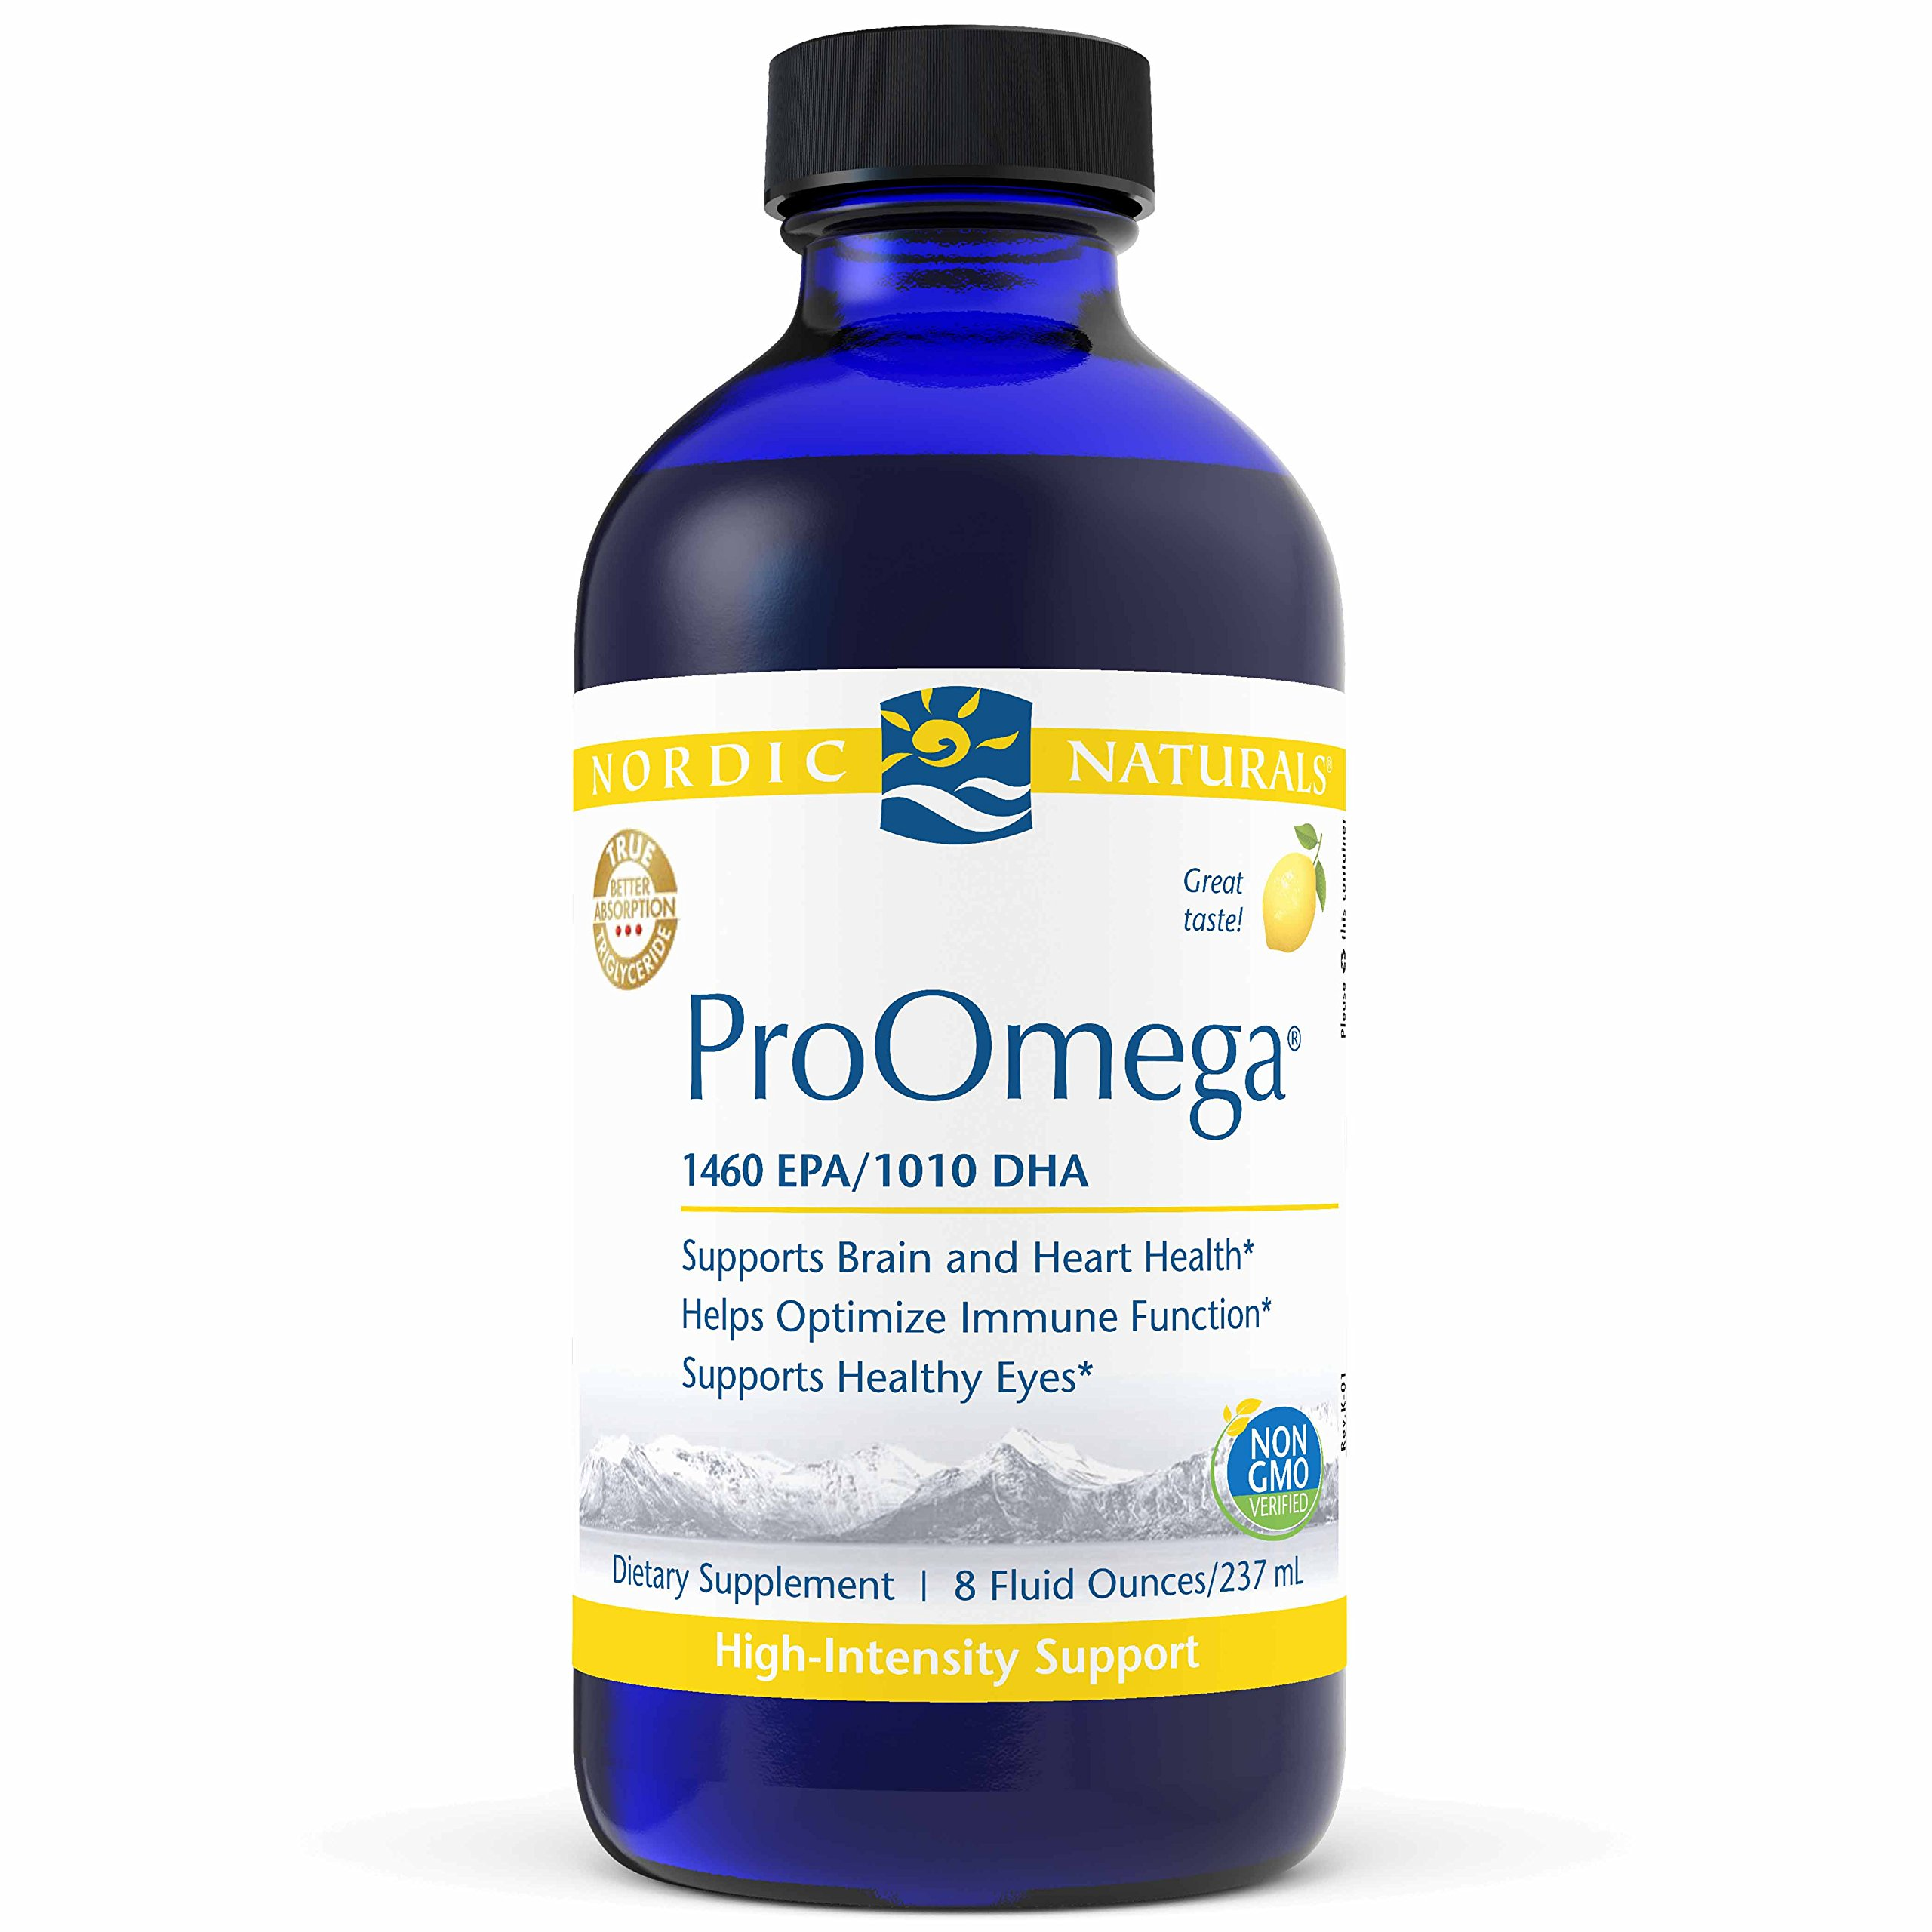 Nordic Naturals ProOmega Liquid - Fish Oil, 1460 mg EPA, 1010 mg DHA, High-Intensity Support for Cardiovascular, Neurological, Eye, Joint, and Immune Health*, Lemon Flavored, 8 oz. by Nordic Naturals